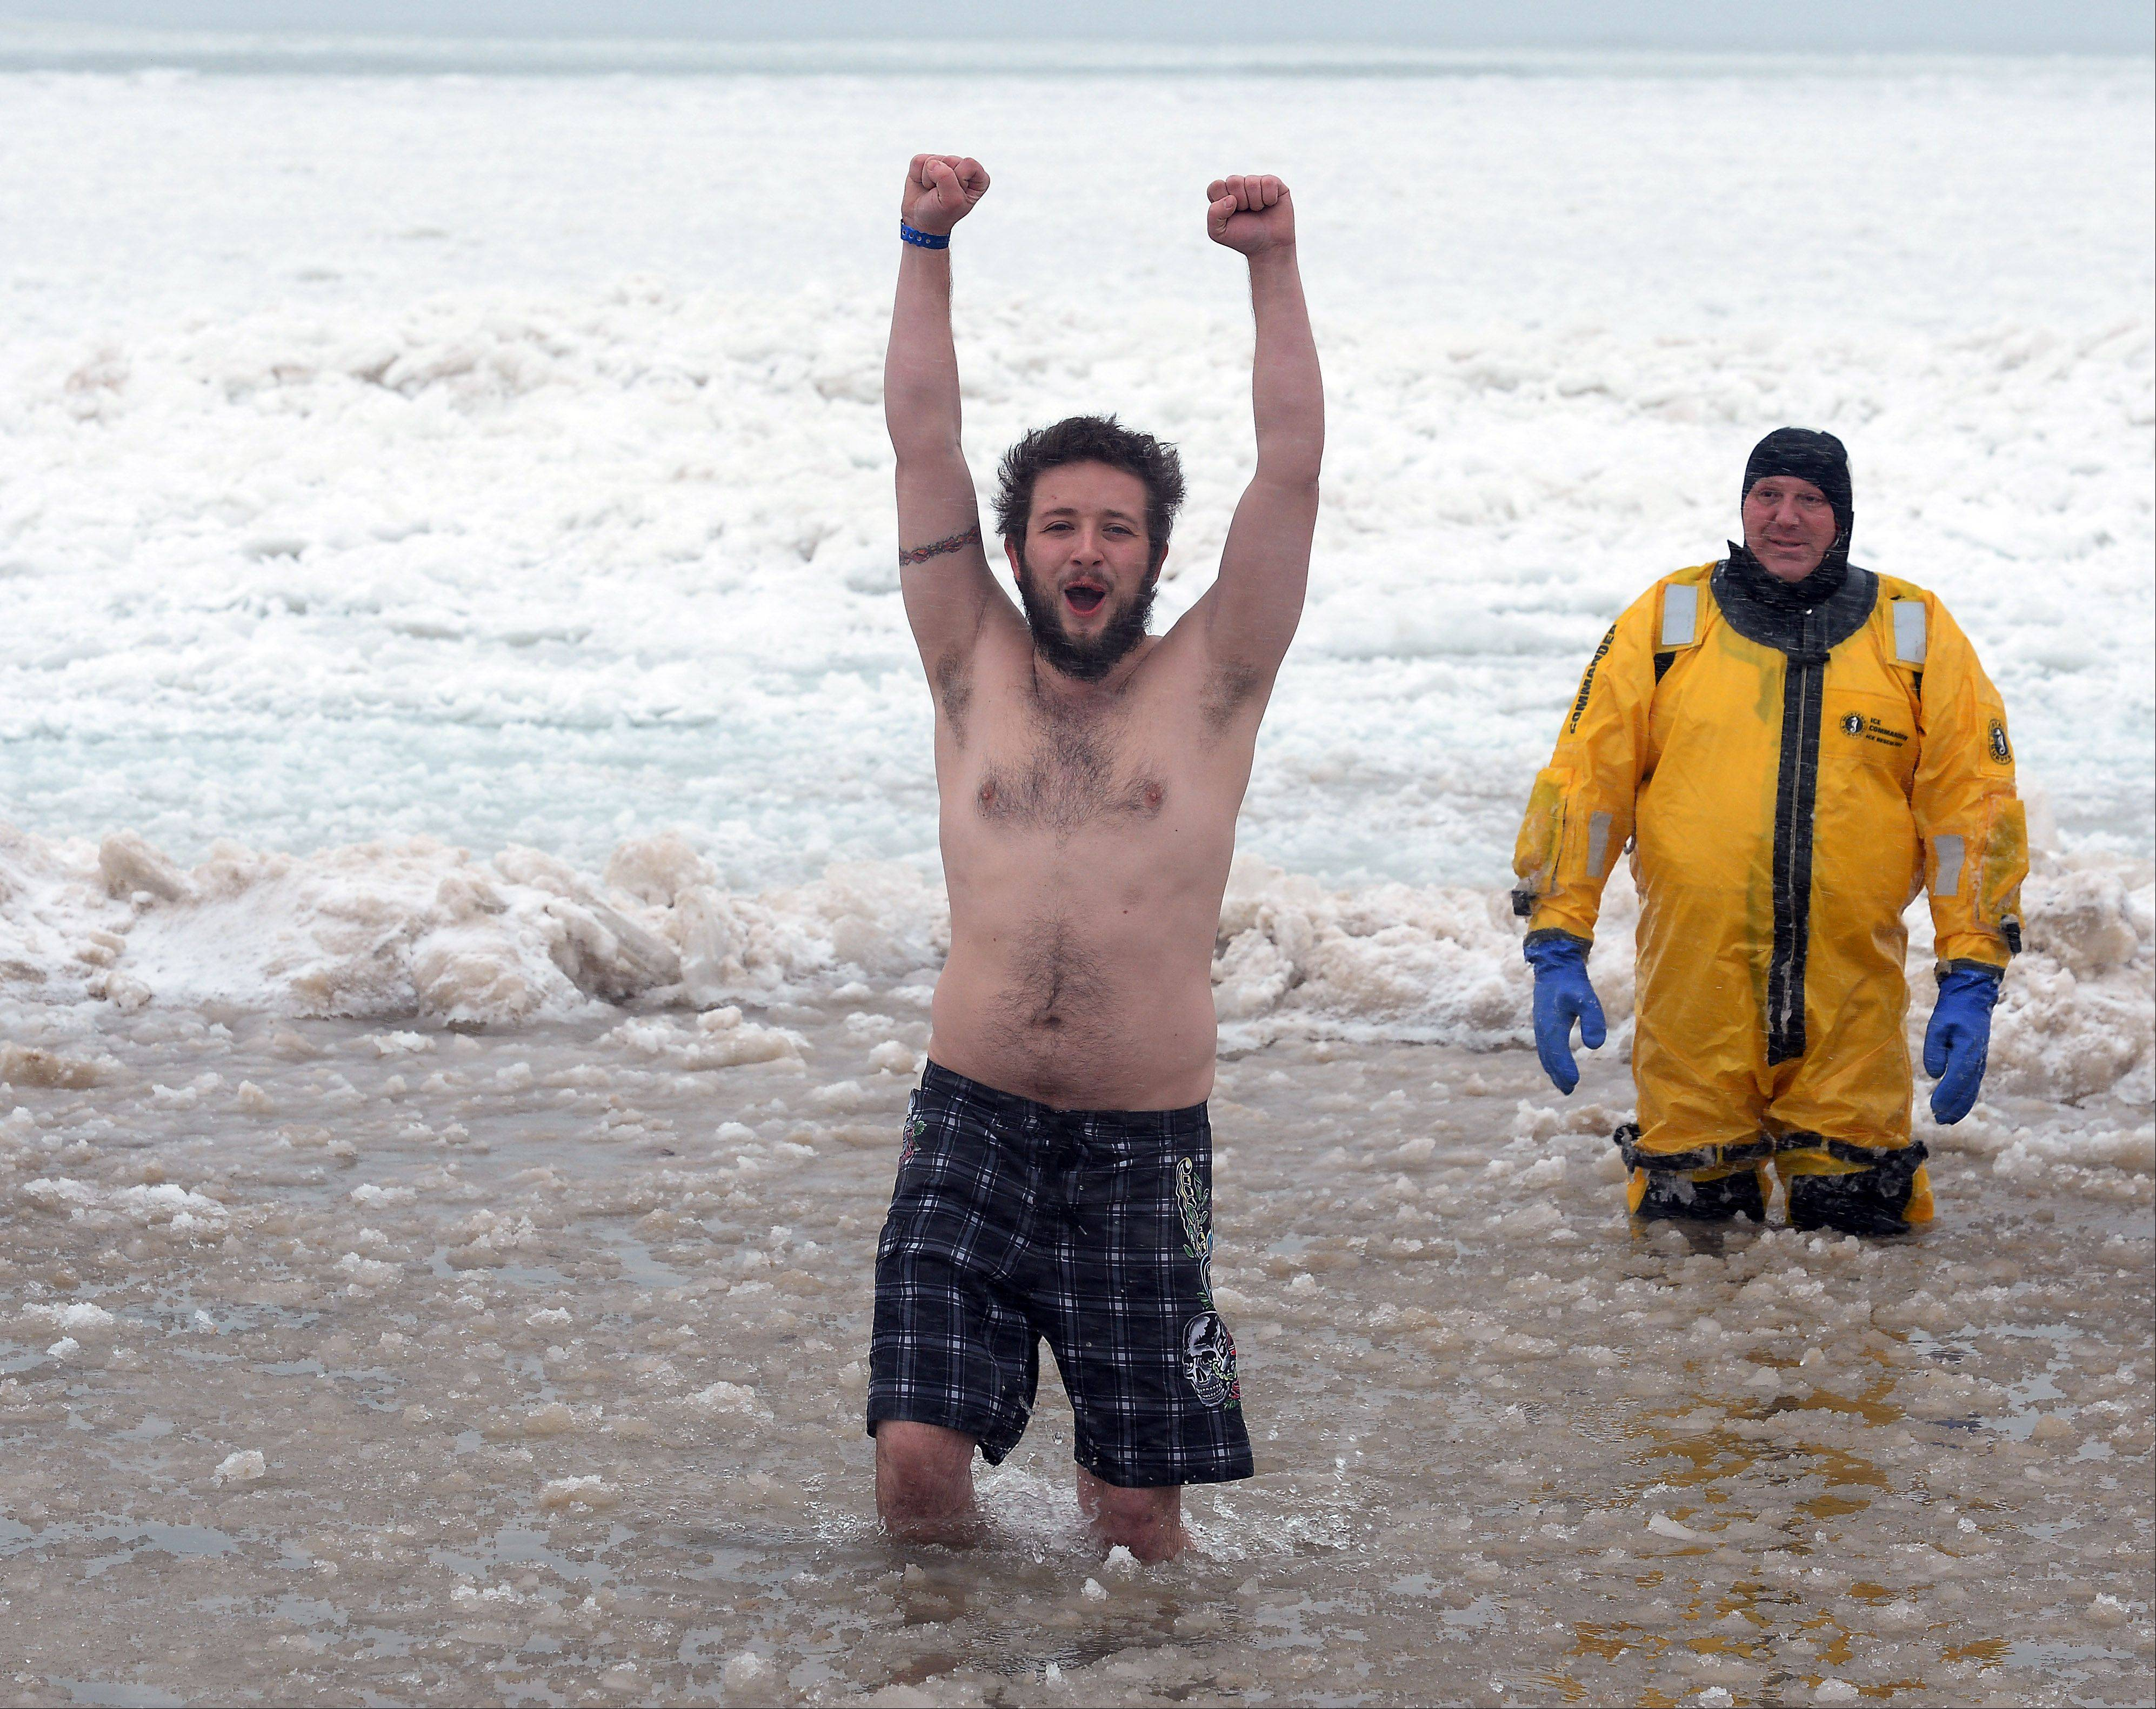 Brad Paschall of Waukegan braves the freezing water at the 15th Annual Polar Bear Plunge at Waukegan Municipal Beach.